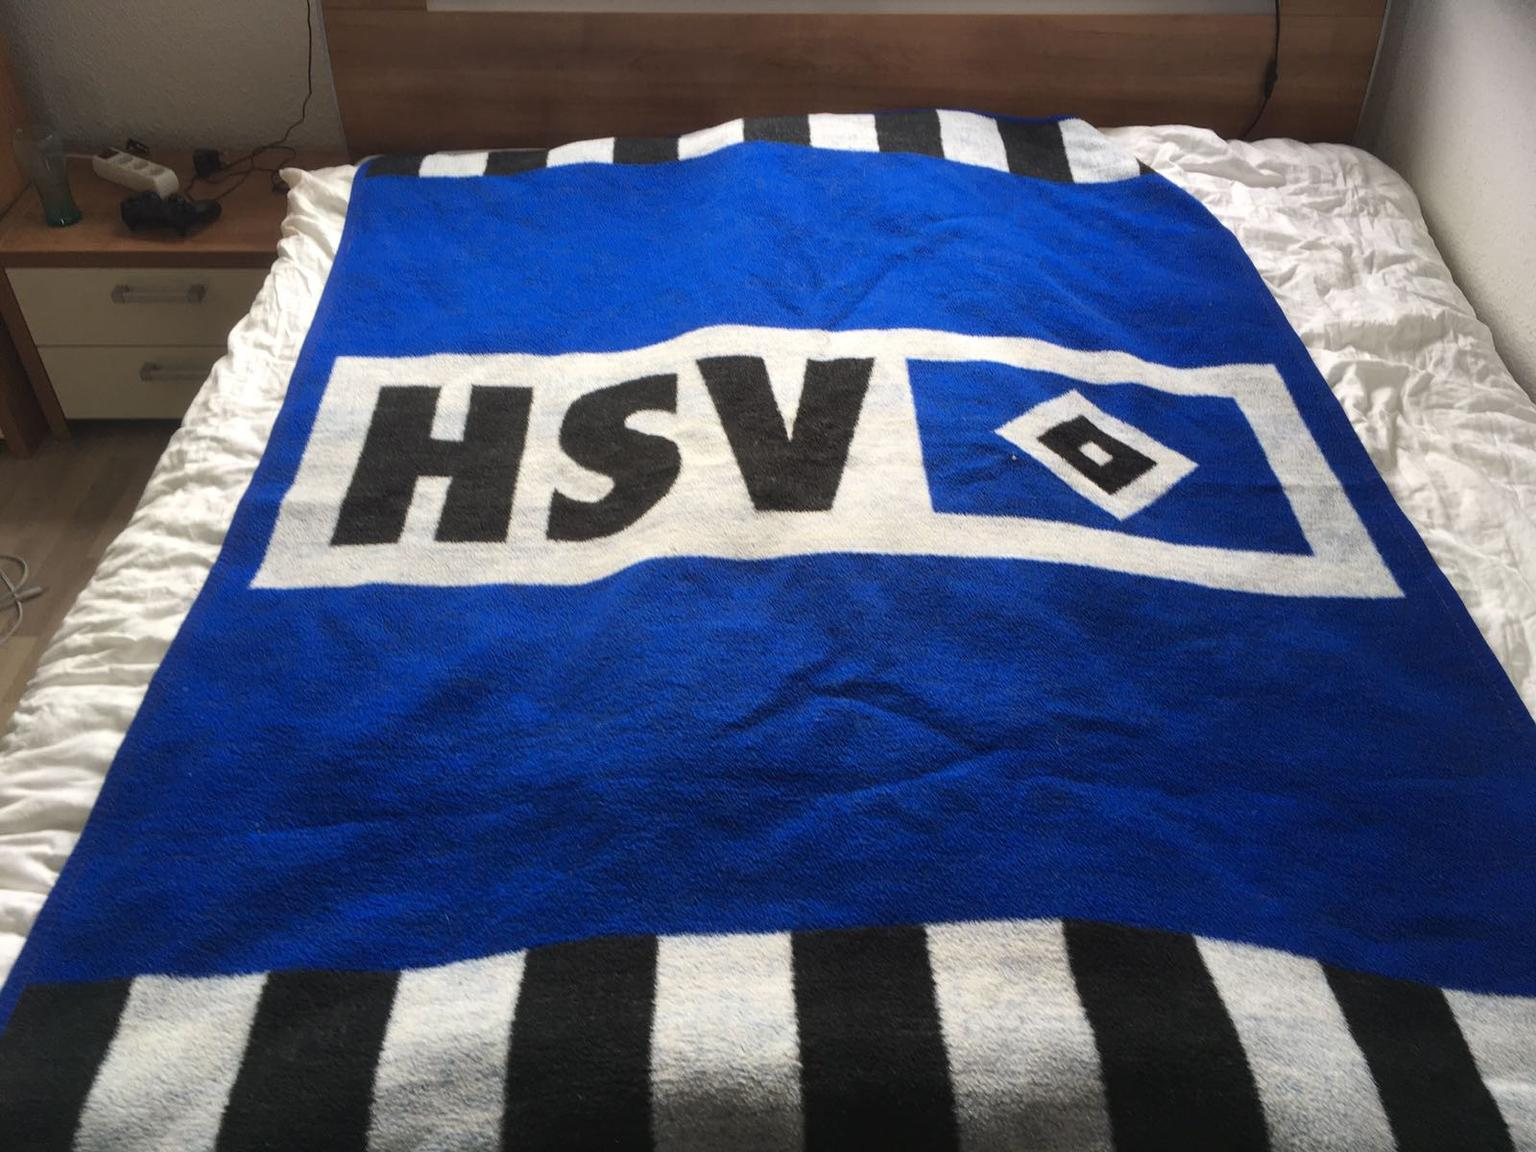 Hsv Tagesdecke In 20537 Hamm For 25 00 For Sale Shpock